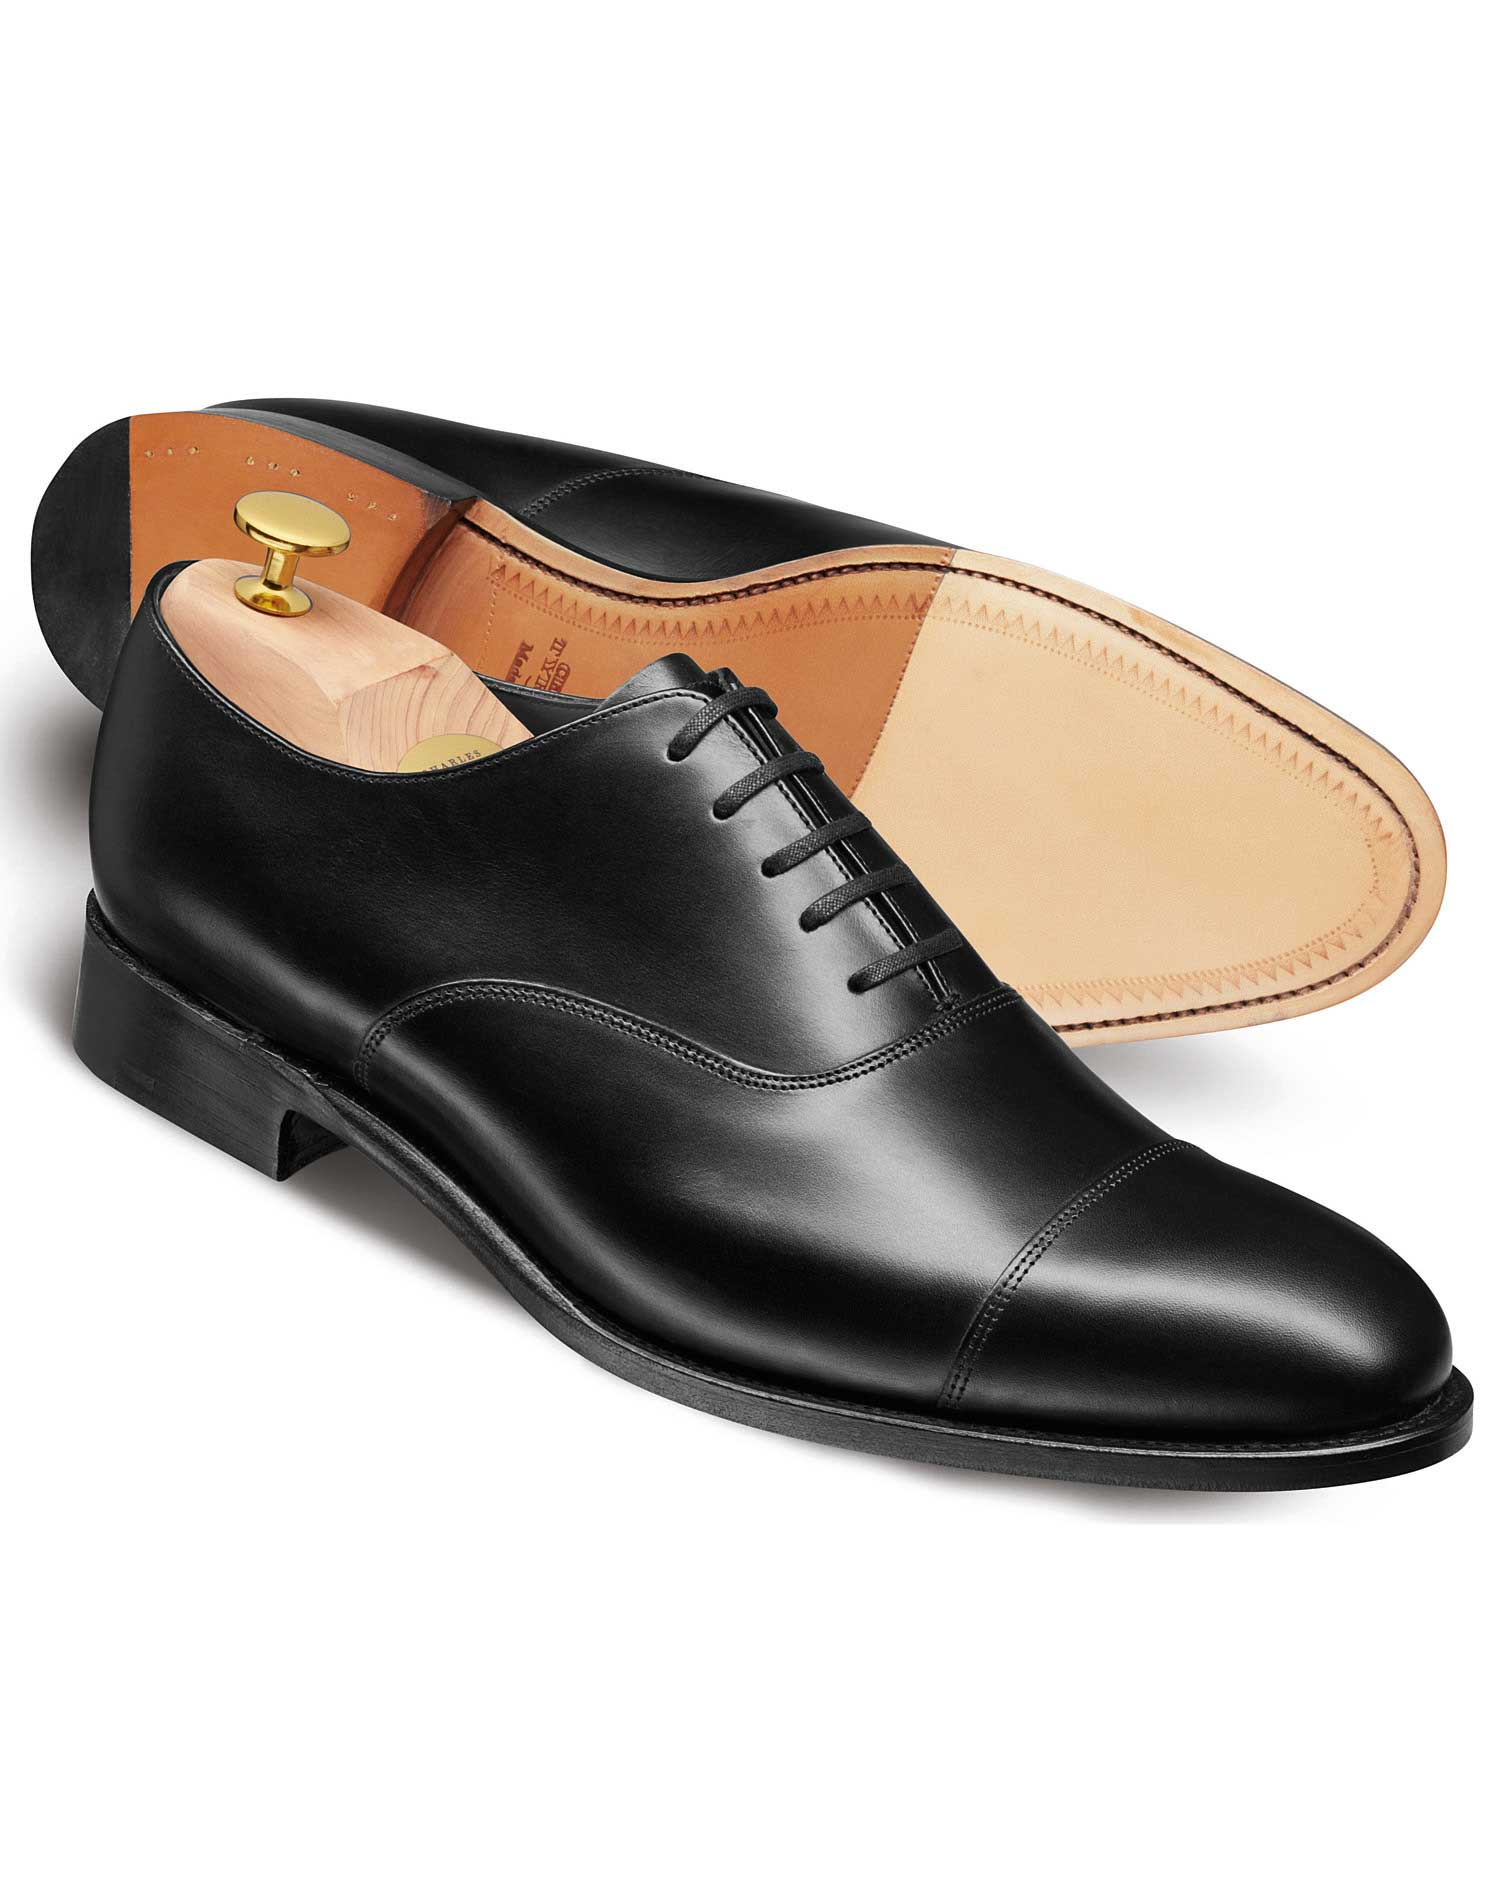 Black Leather Oxford Dress Shoes